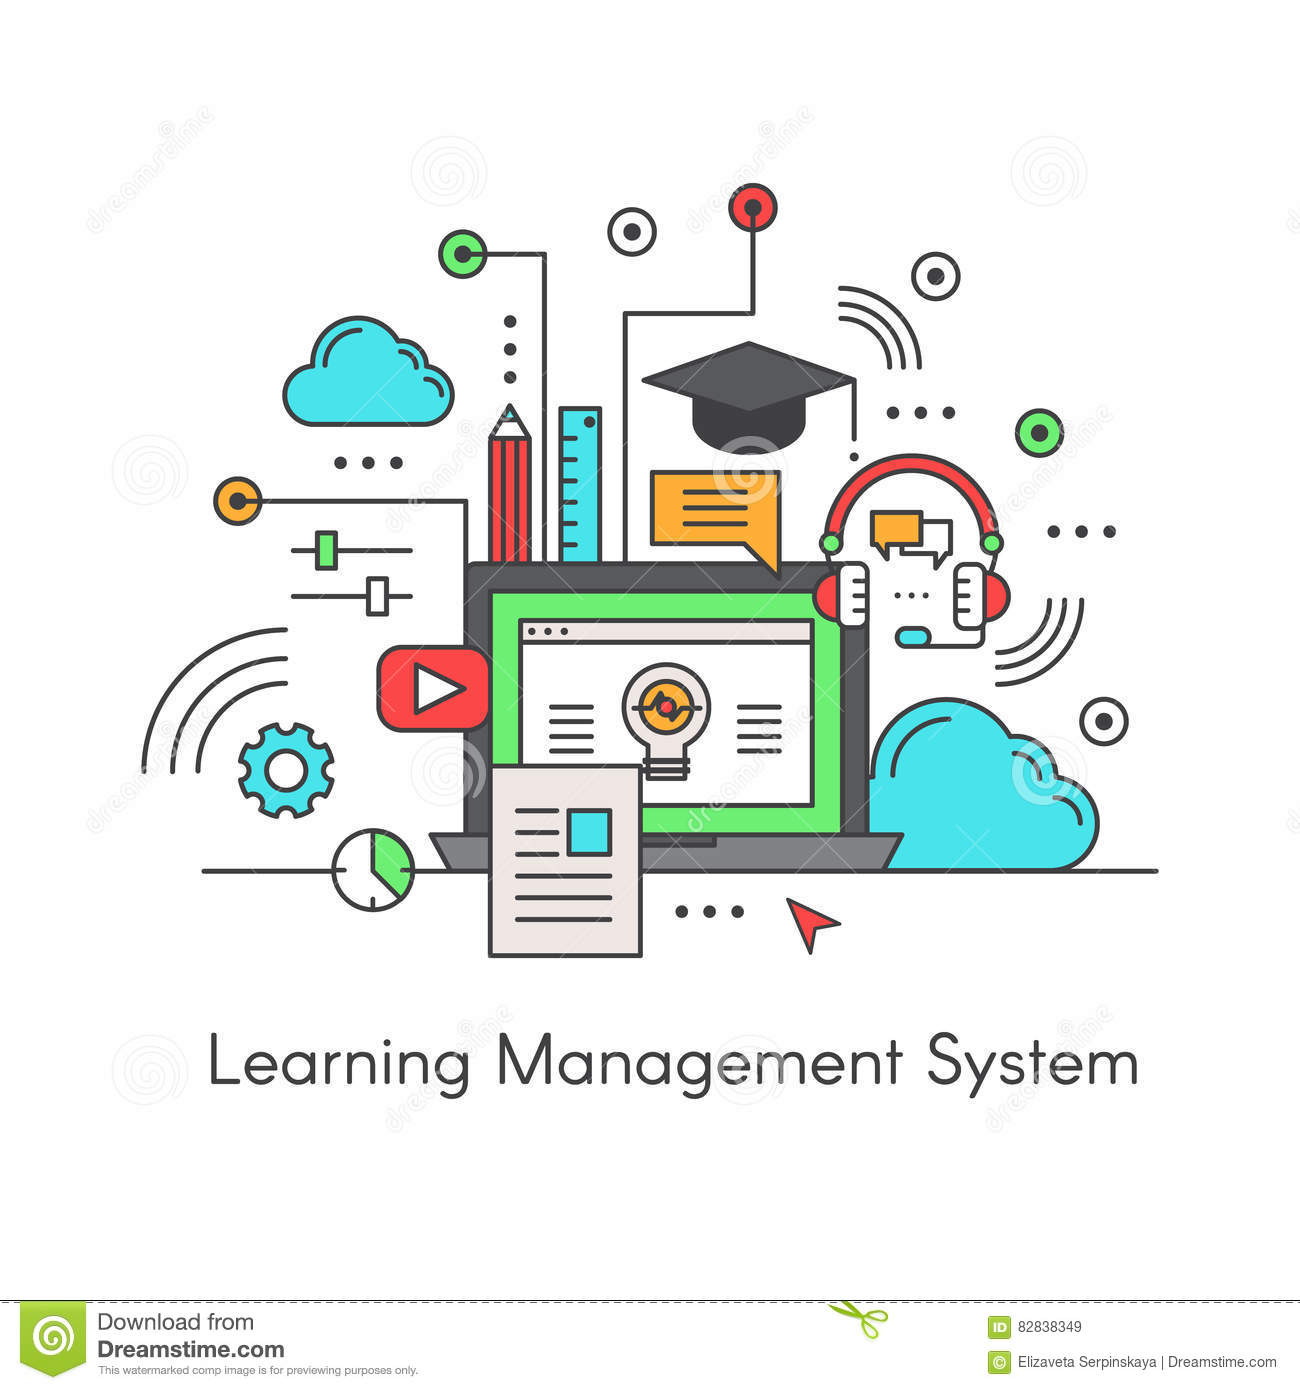 e-learning management system thesis Learning management systems (lms) have been proven to encourage a  e- learning appeared at the end of the 20th century and has quickly become a new   for identifying and prioritising issues and barriers to adoption (doctoral thesis.